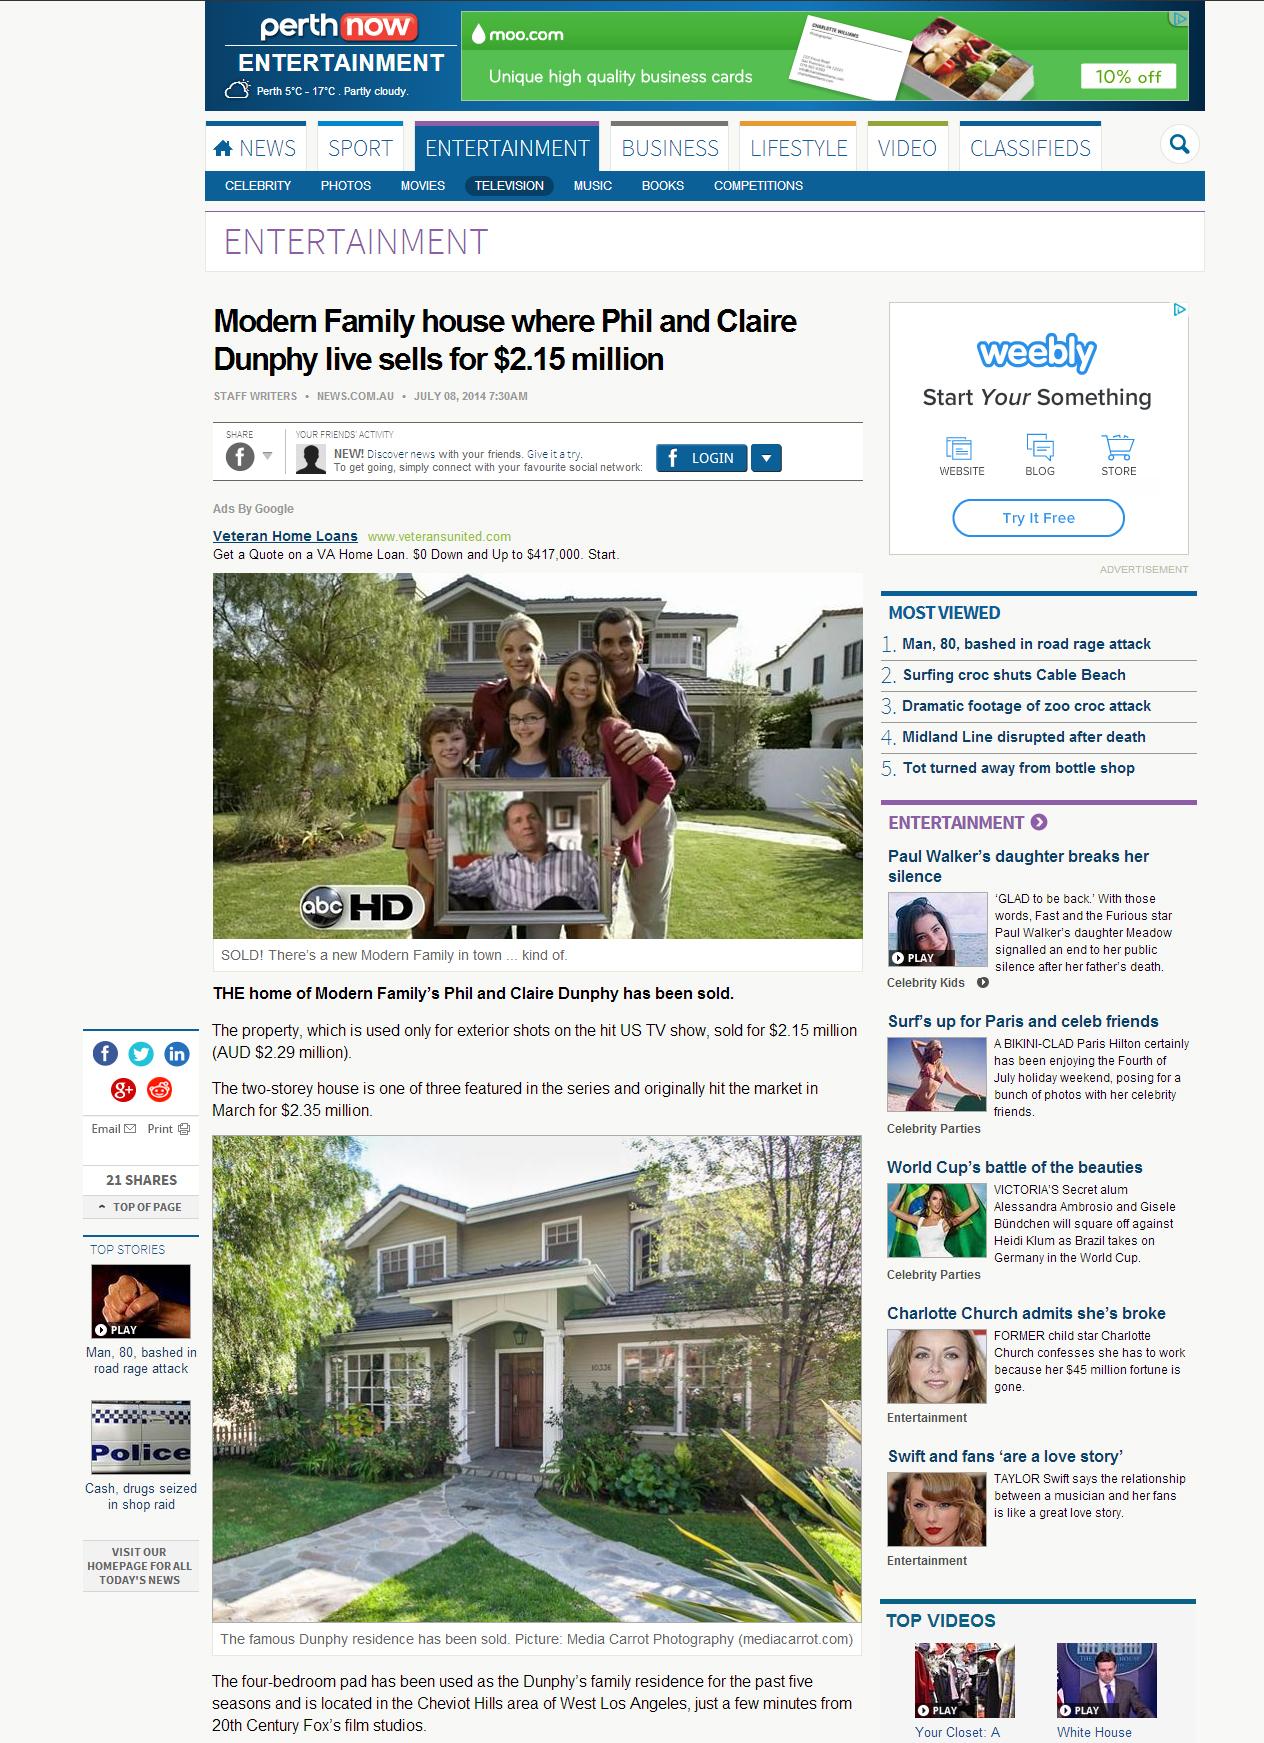 Click on the image to view the article and see a few more of our photos!